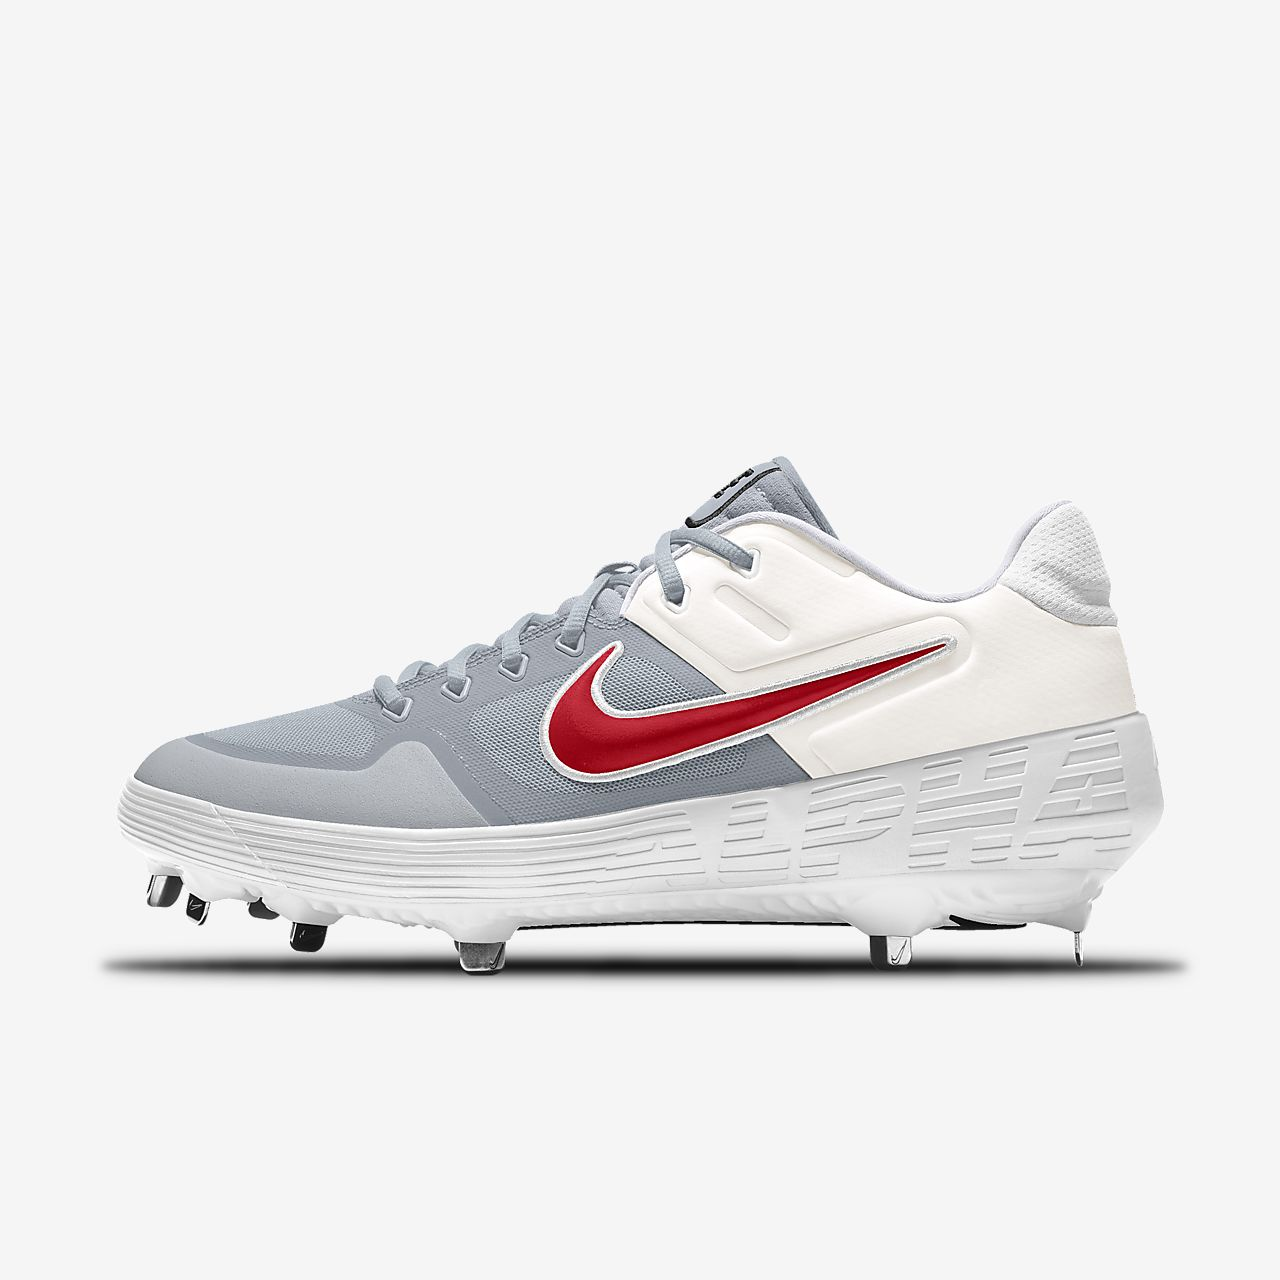 Nike Alpha Huarache Elite 2 Low By You Custom Baseball Cleat